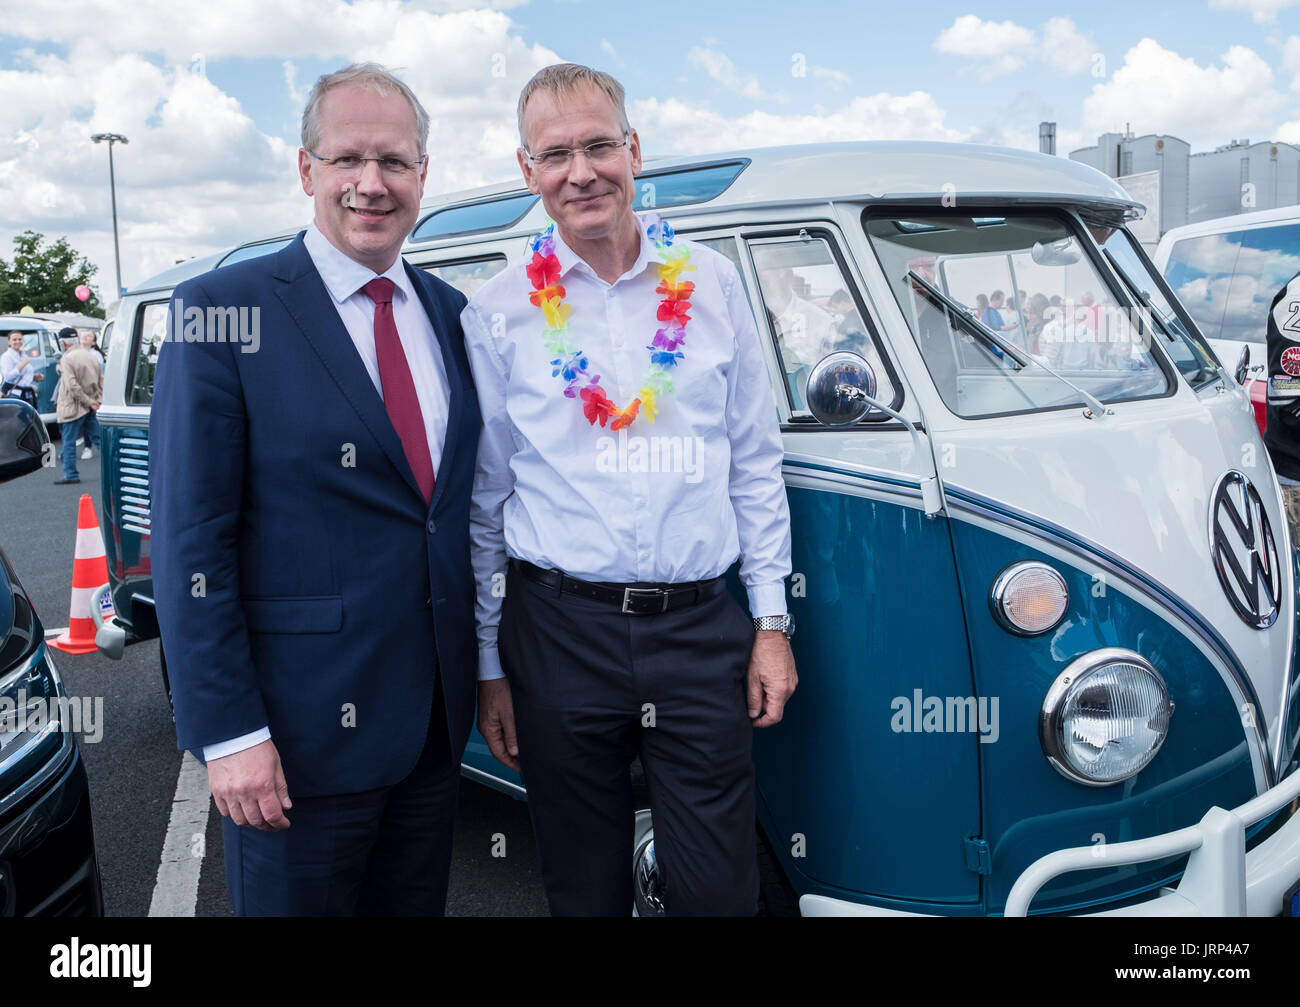 Stocken, Germany. 06th Aug, 2017. Hannover Mayor Stefan Schostok (L) and the Chairman of Brand Management of Volkswagen Commercial Vehicles, Eckhard Scholz, pictured in the grounds of the Volkswagen Commercial Vehicles Plant during the Kombi Meet on the occasion of the 70th anniversary of the Volkswagen Transporter in Stocken, Germany, 06 August 2017. Photo: Peter Steffen/dpa/Alamy Live News - Stock Image